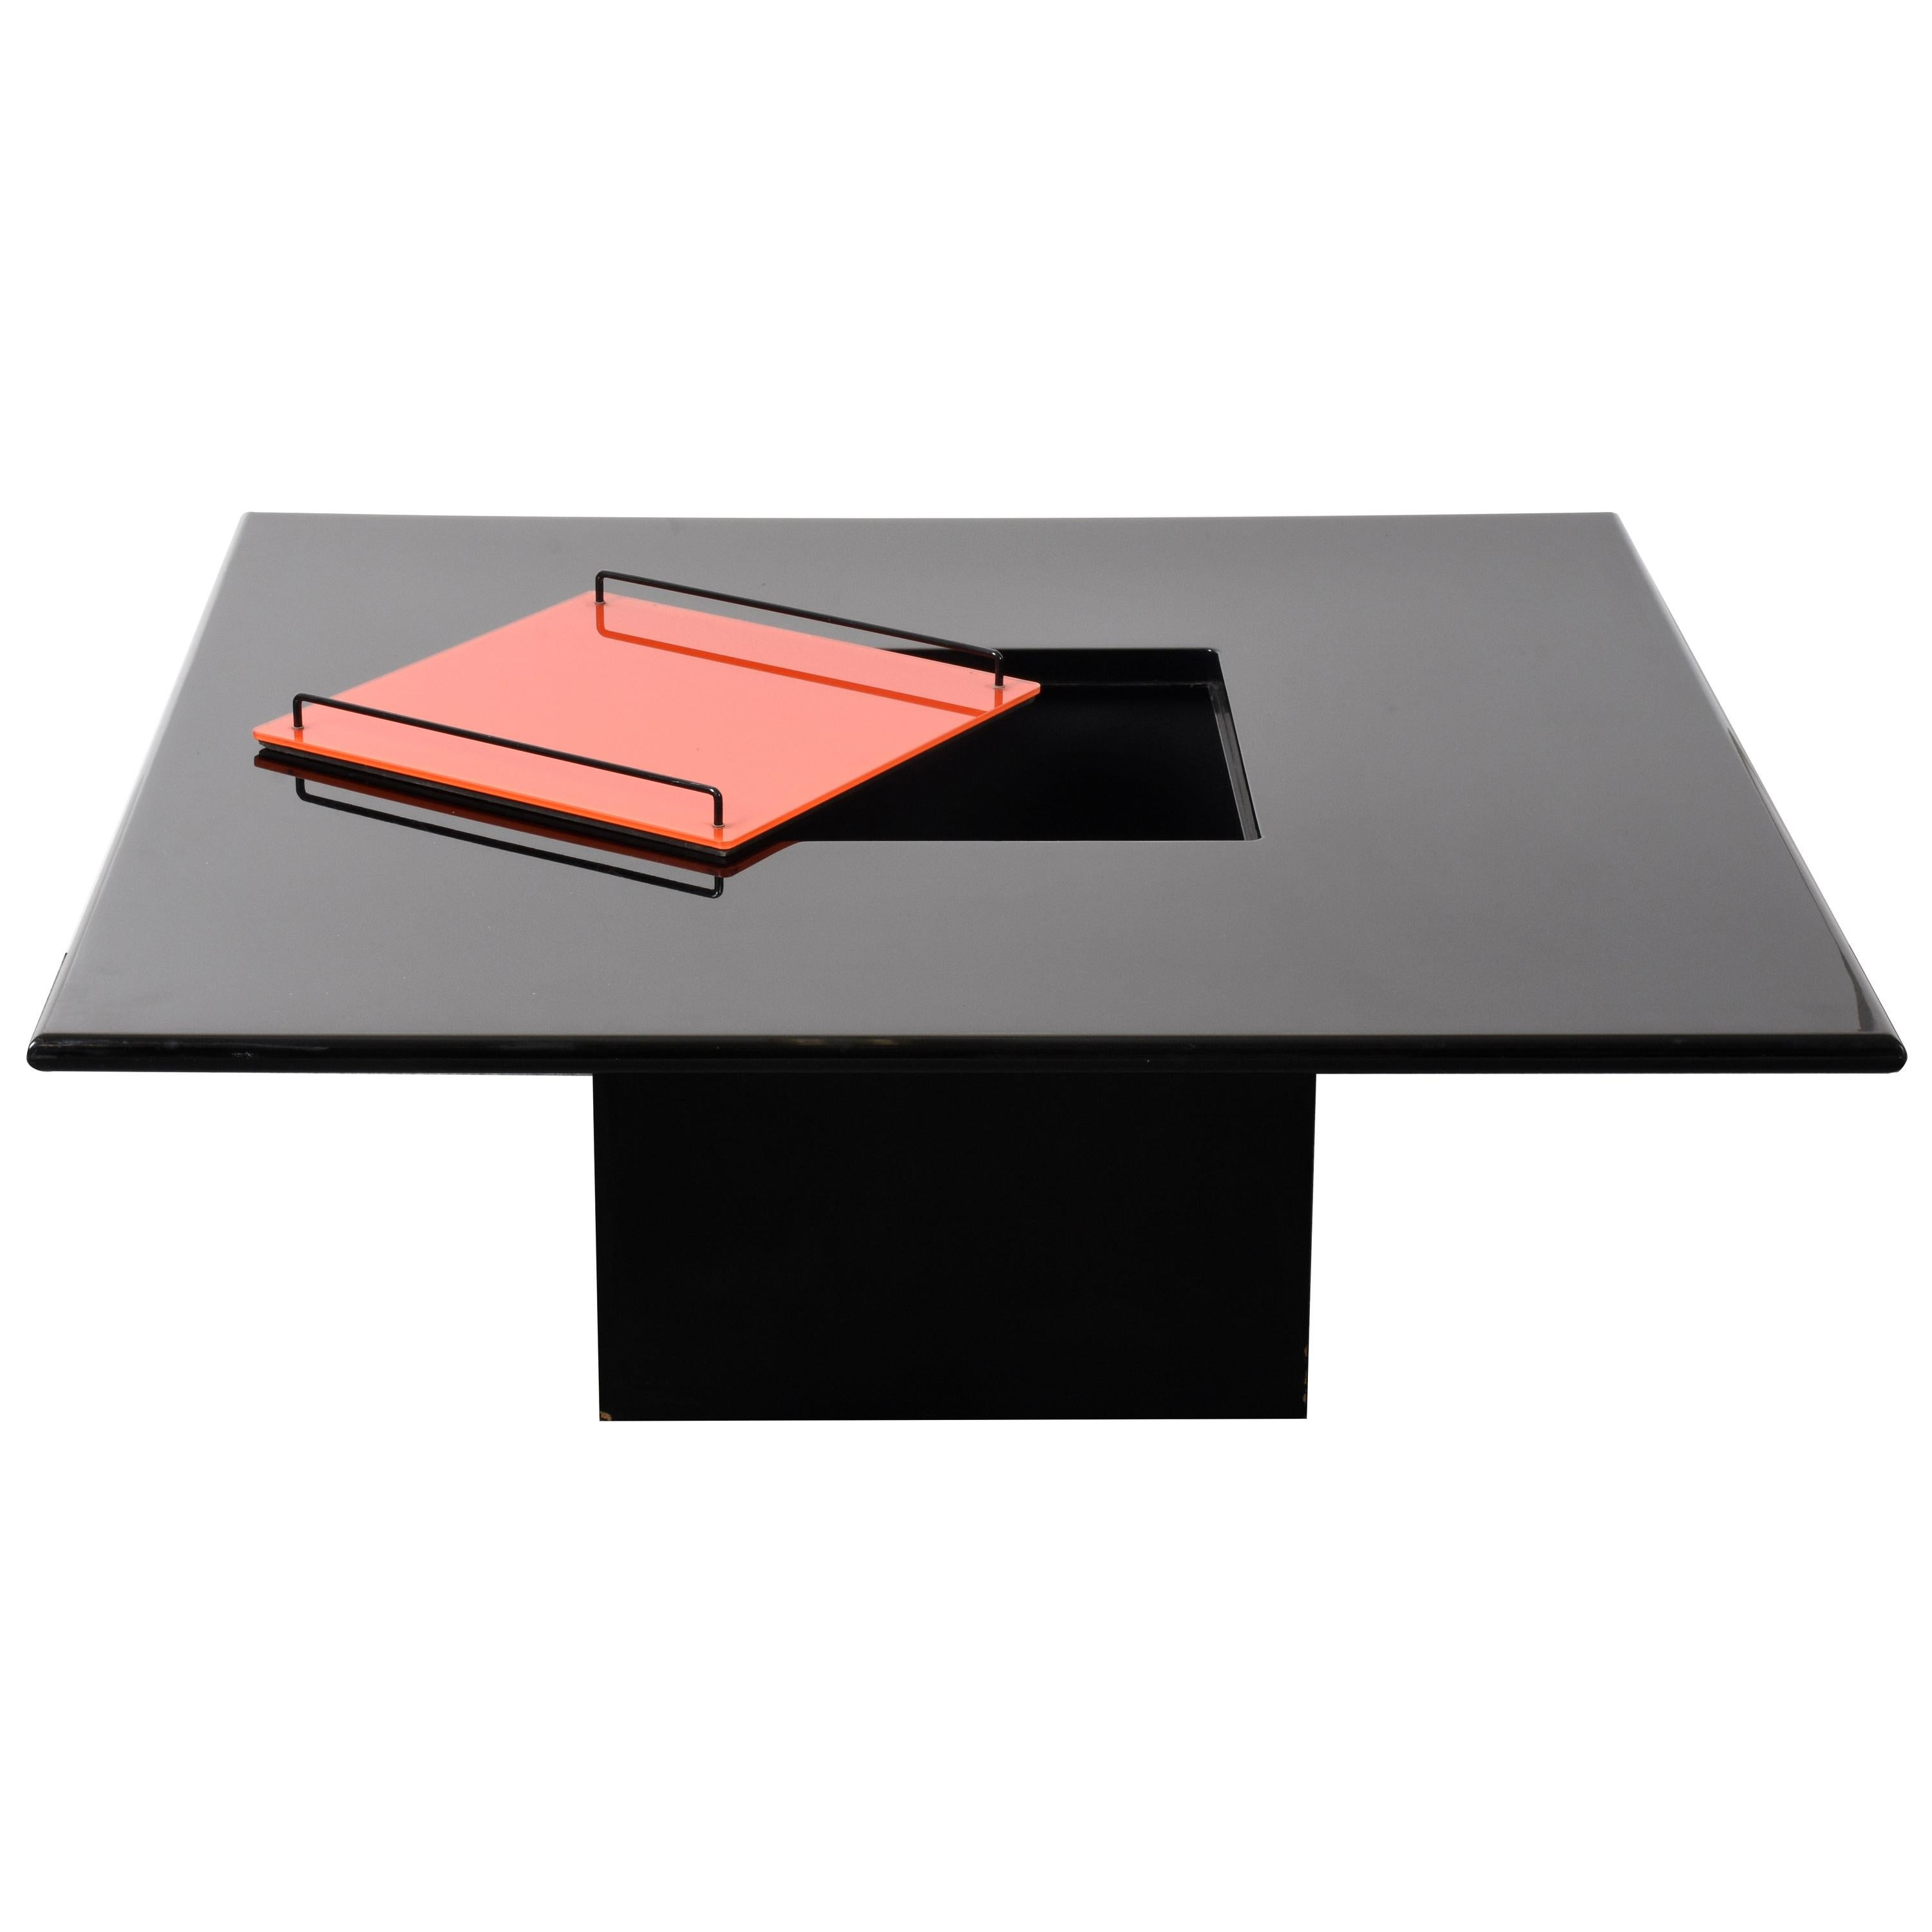 Willy Rizzo Black Lacquered Wood Italian Coffee Table with Bar and Tray, 1970s